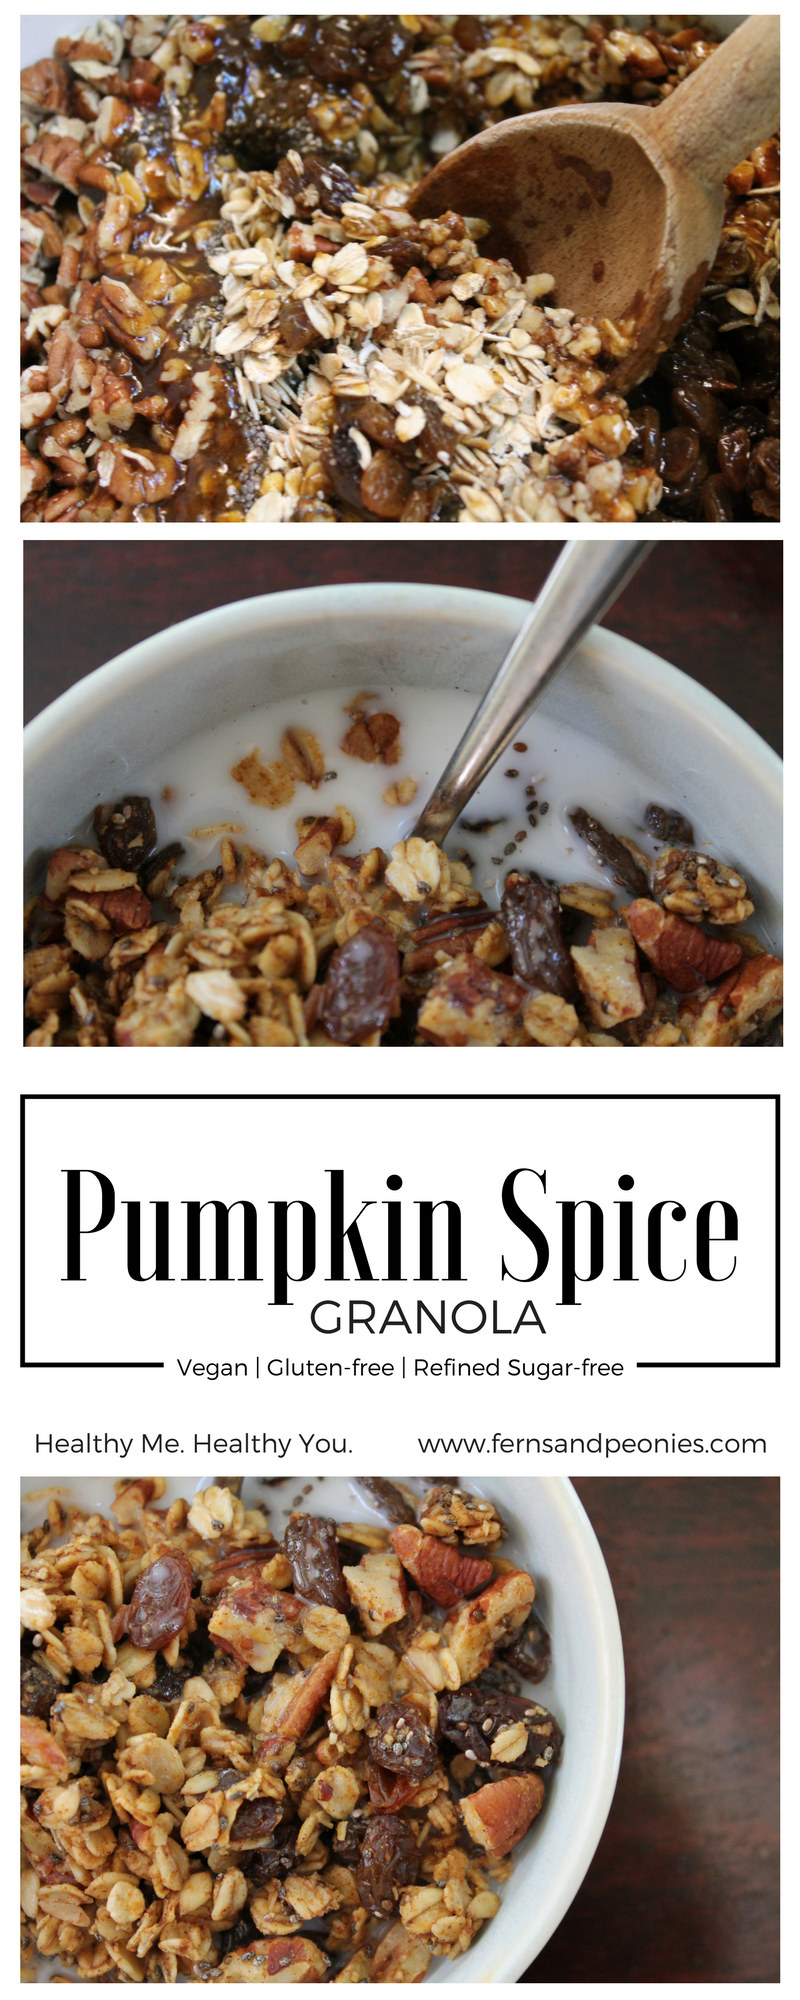 Vegan, gluten-free and refined sugar-free Pumpkin Spice Granola. A healthy alternative to feed your autumn flavor craving. Find this recipe and more at www.fernsandpeonies.com